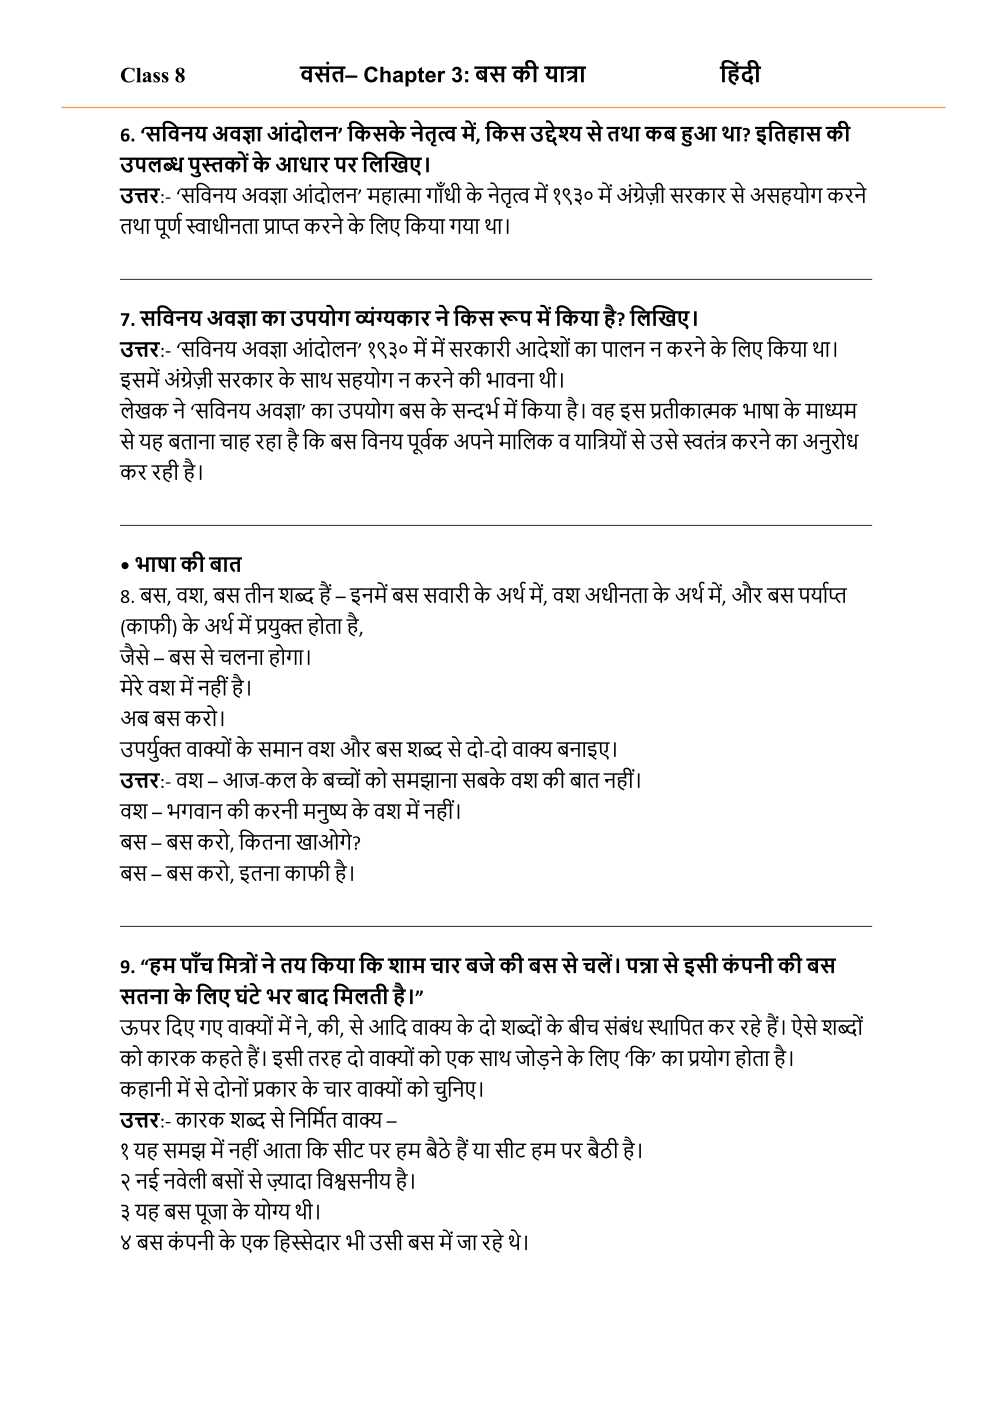 NCERT Solutions For Class 8 Hindi Vasant Chapter 3